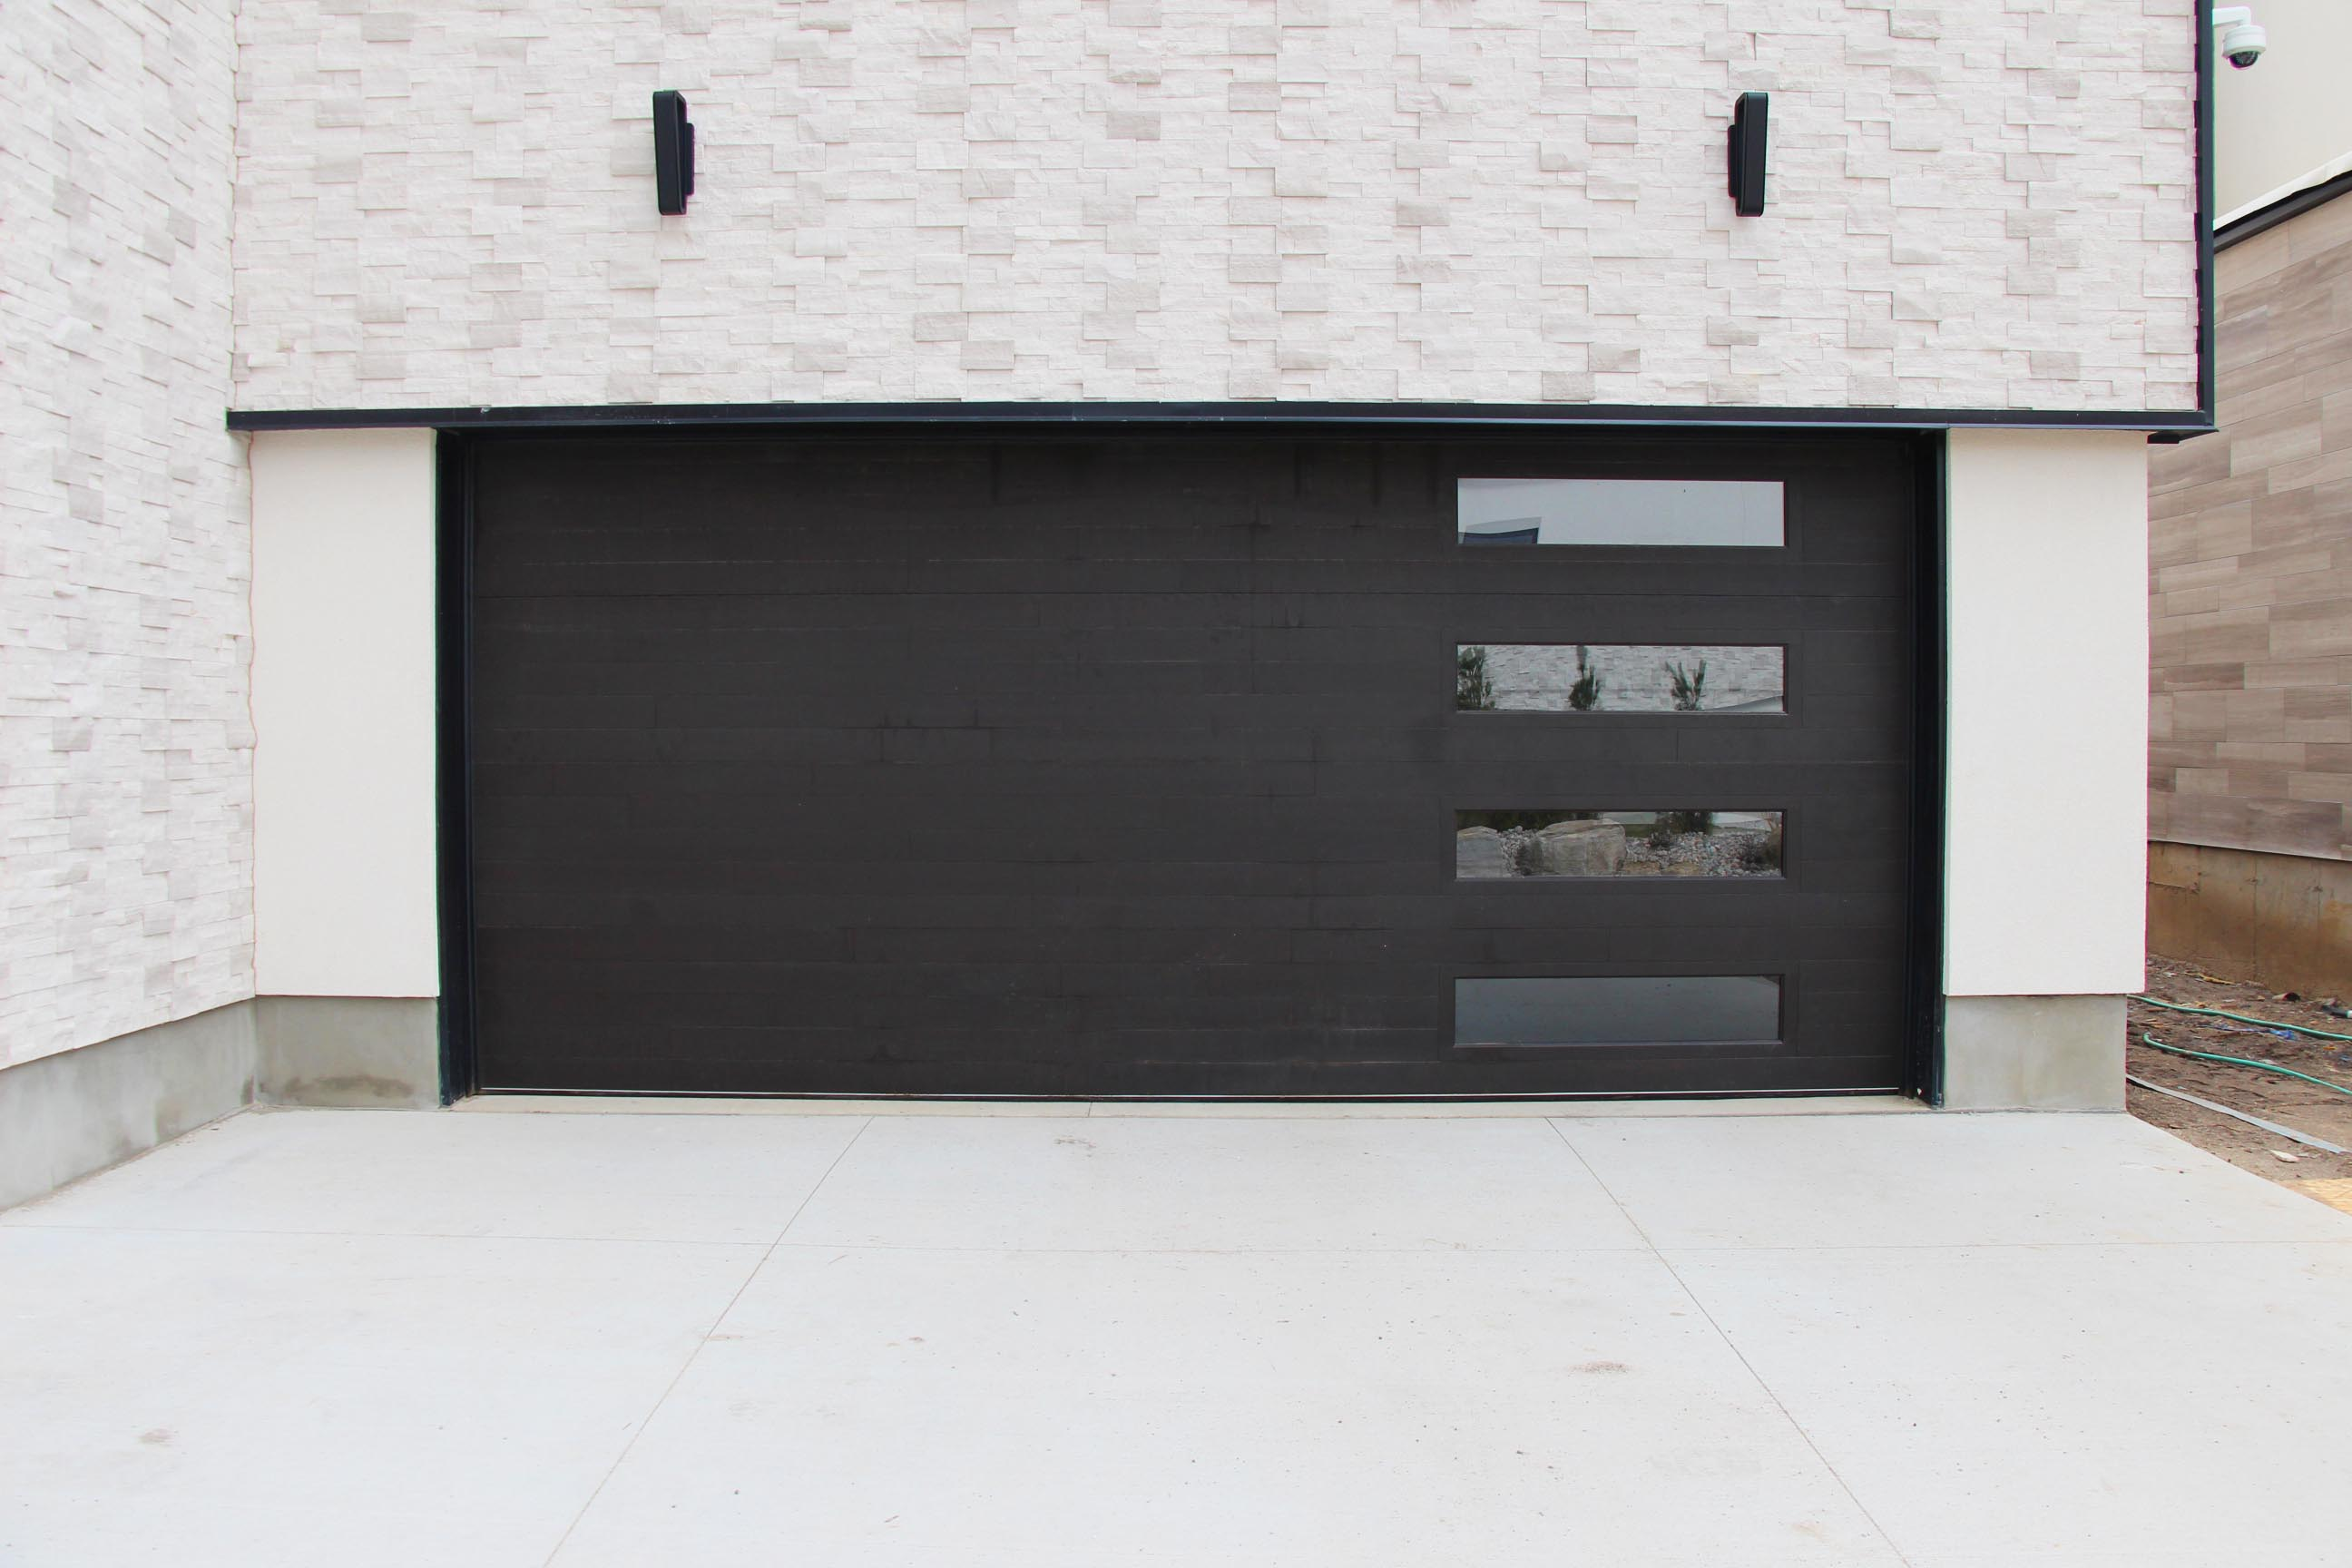 nggallery us residential gallery wh continental door x slideshow garage photo about